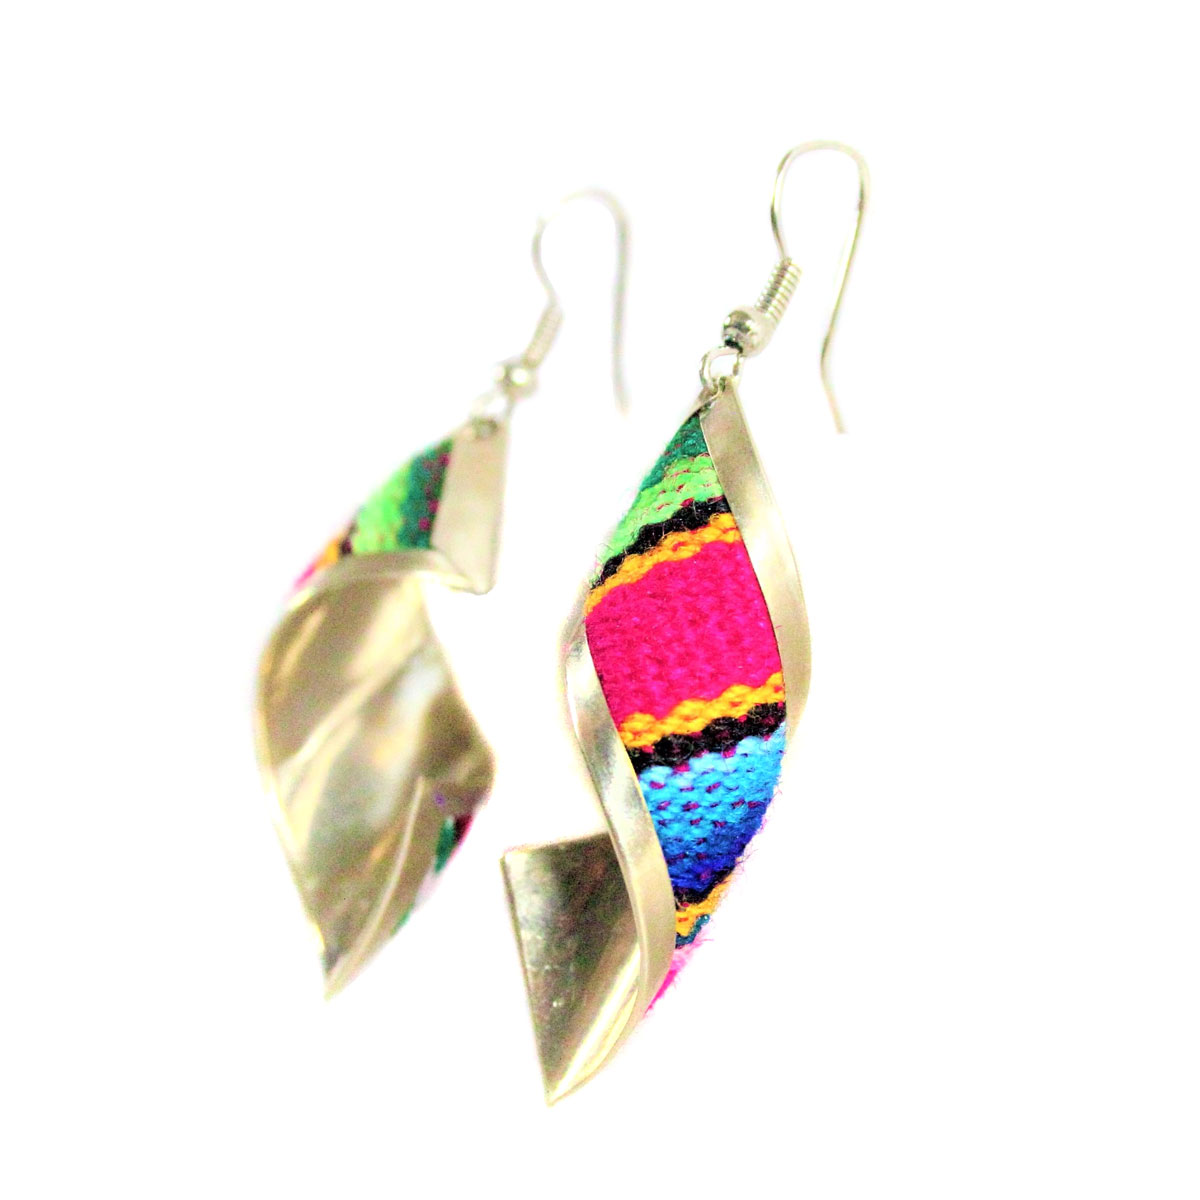 Inka-Products-Boucles d'Oreilles Tissu Traditionnel Péruvien-Rectangle Spiral Fuchsia-2